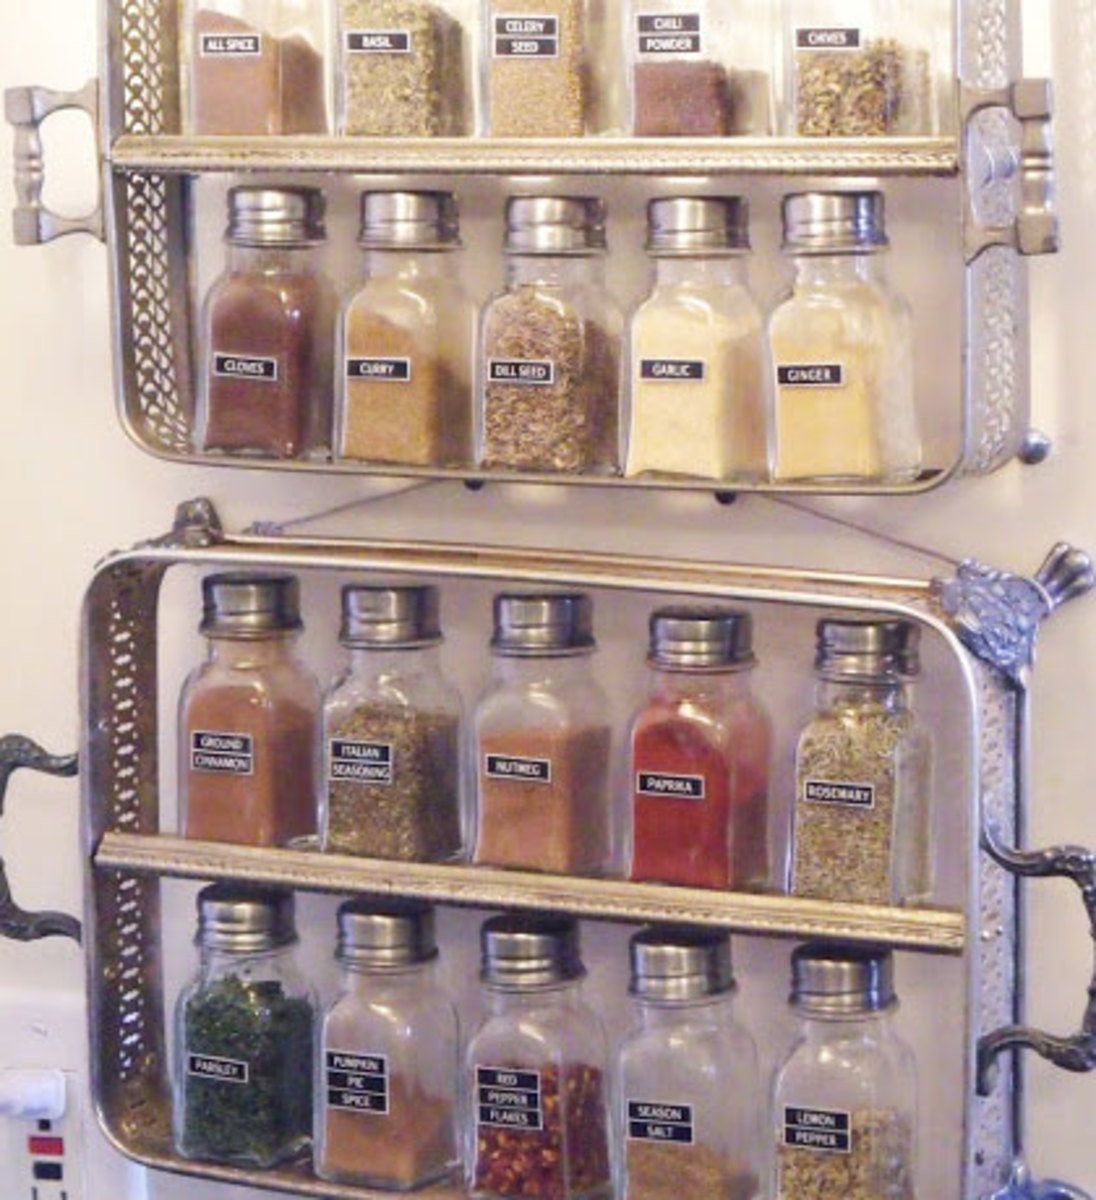 Silver Spice Rack | Easy Organization Ideas for the Home